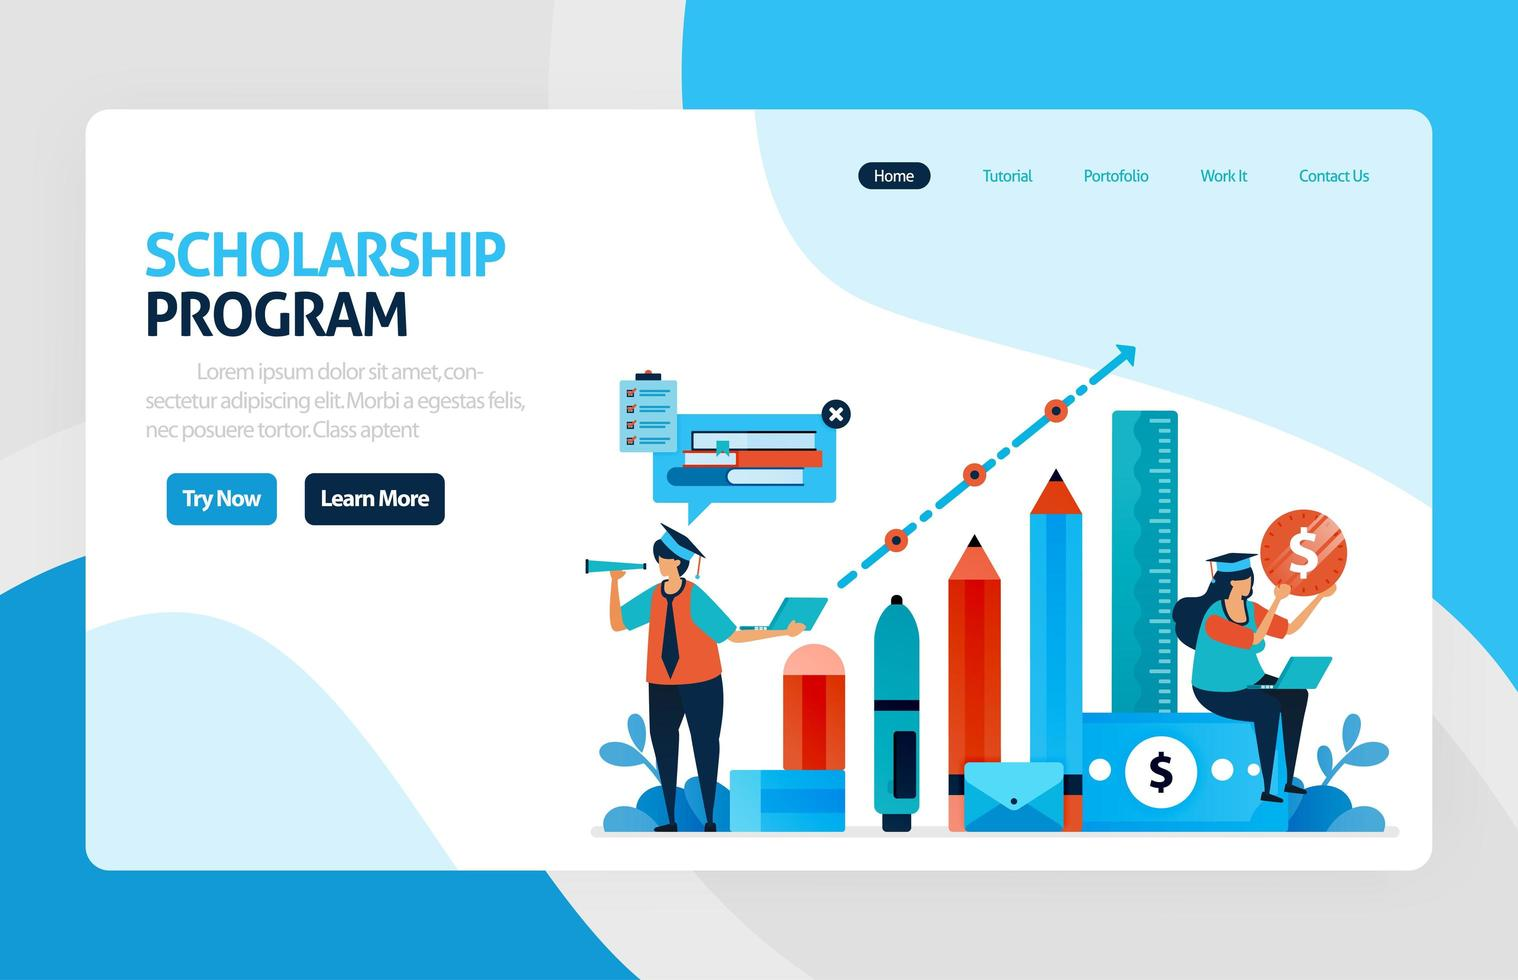 vector illustration of scholarship education program, learning abroad. financial funds and study loans for education. academic achievements, school cost. for banner, web, website, mobile apps, flyer